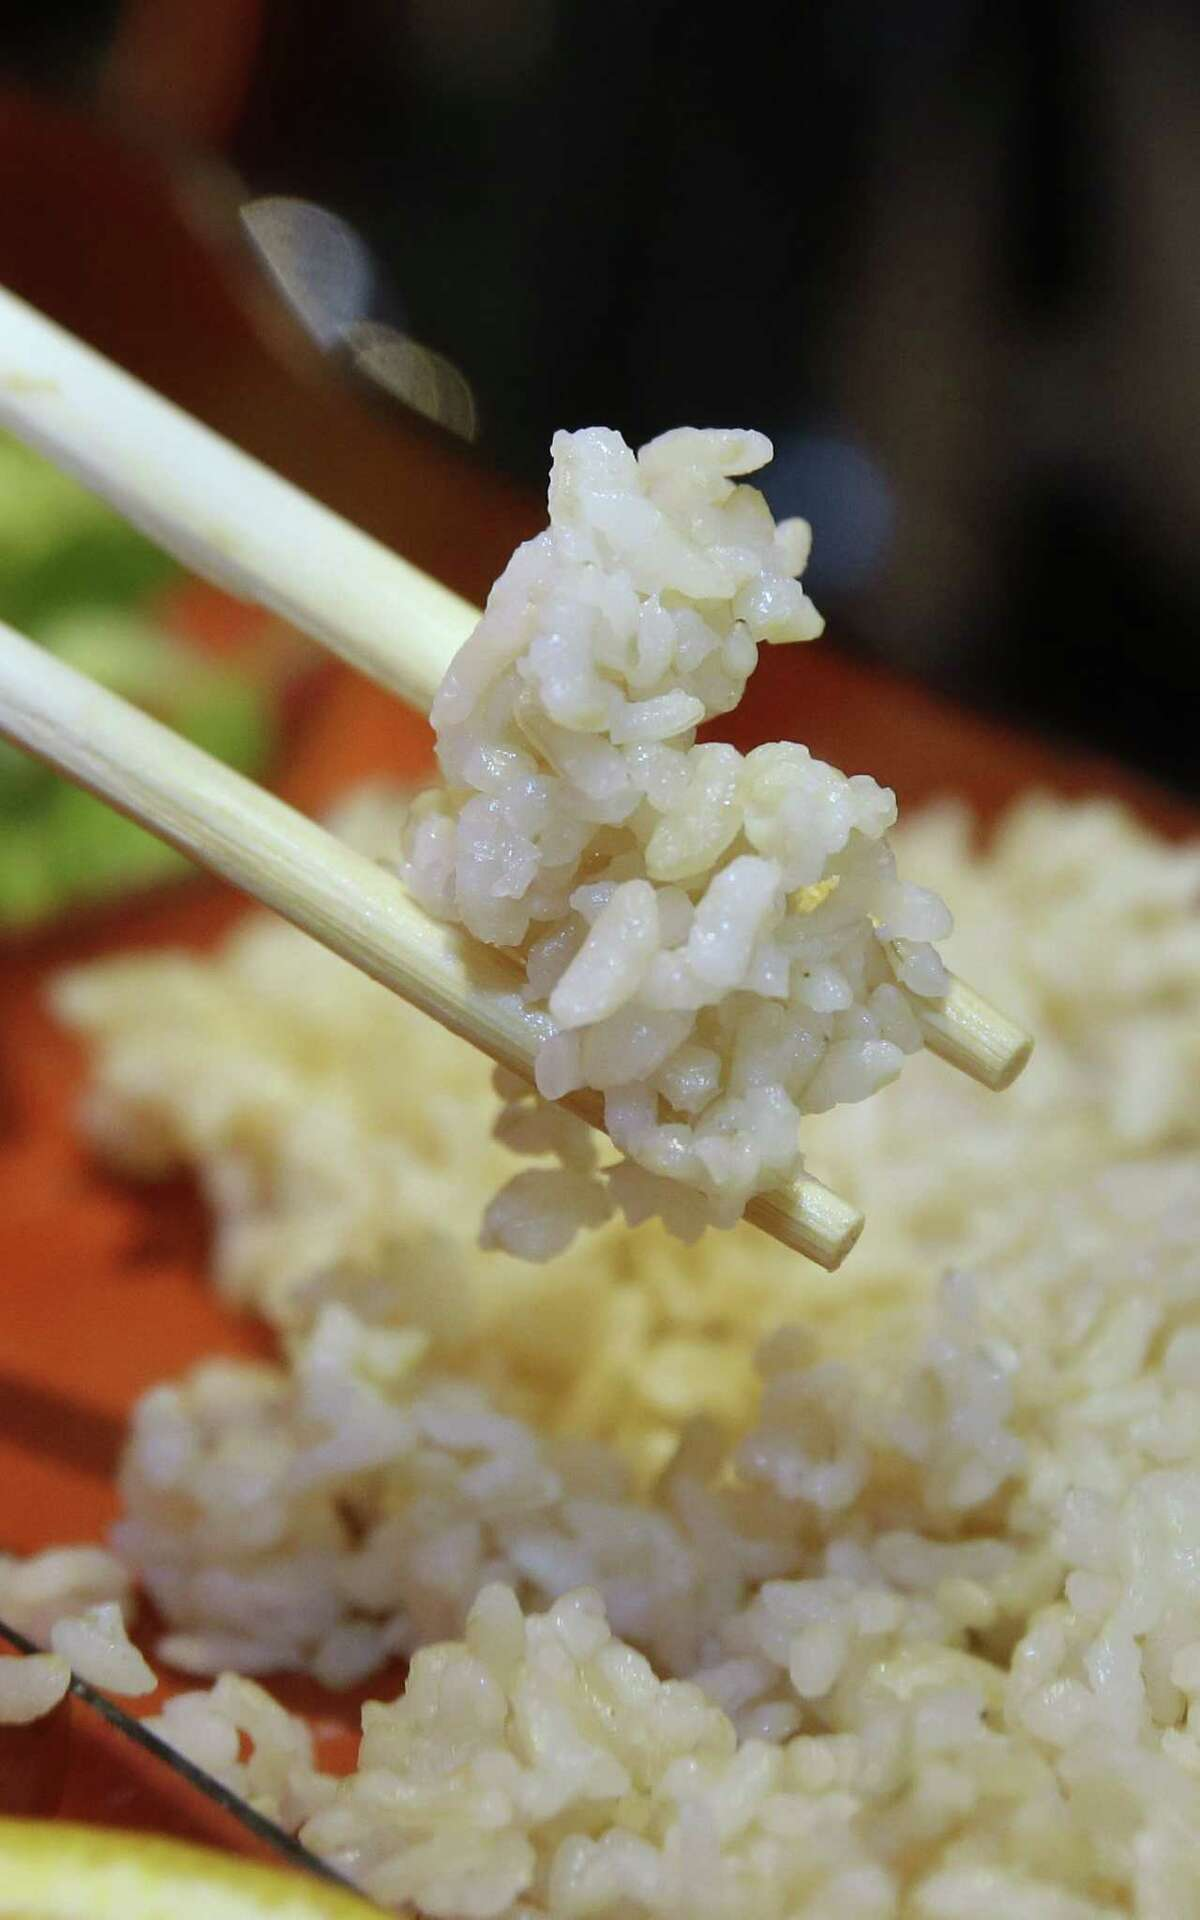 In this photo taken Friday, Oct. 10, 2014, a diner at Mikuni Restaurant digs into some rice while having lunch in Sacramento, Calif. California's historic drought is taking a bite out of the state's $5 billion rice industry, which exports to more than 100 counties and supplies nearly all American sushi restaurants. (AP Photo/Rich Pedroncelli)